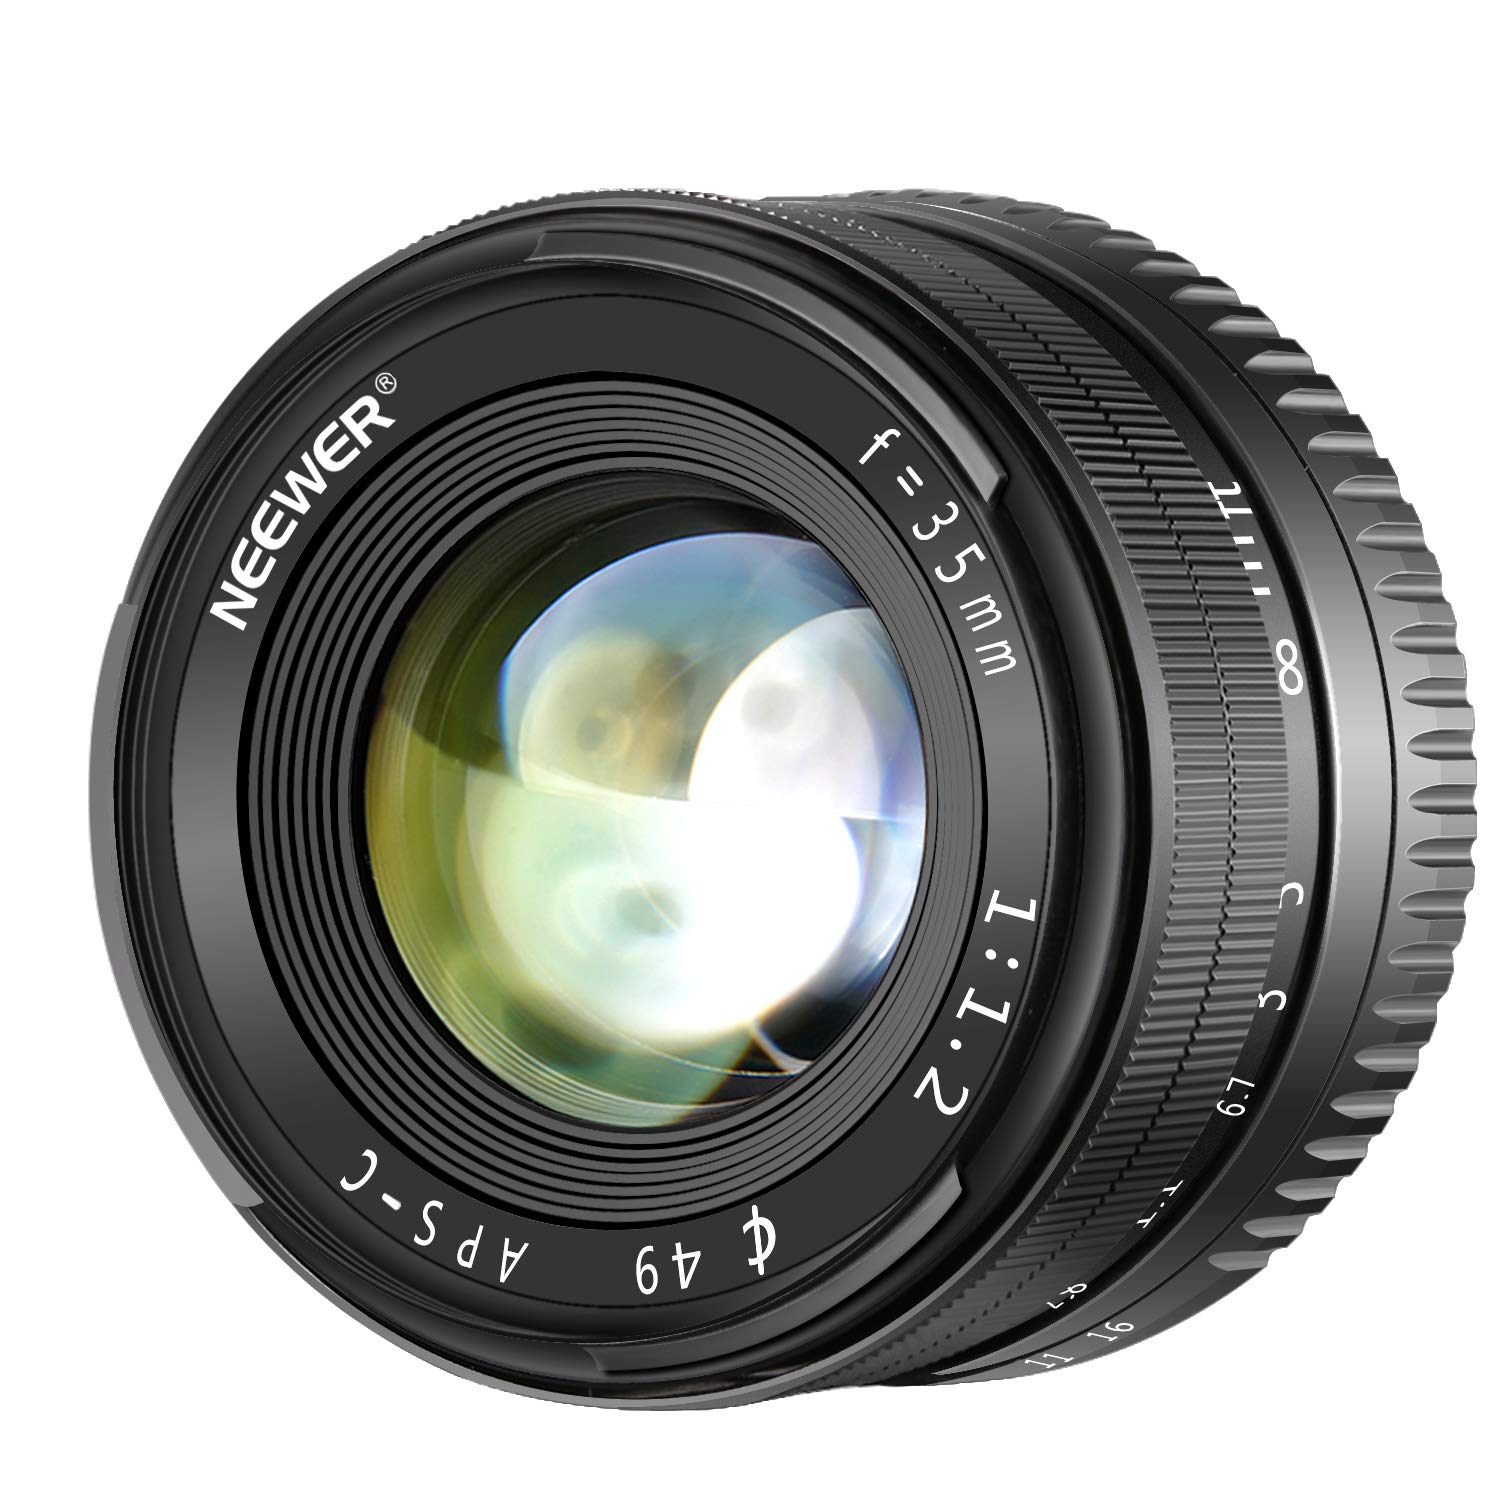 Neewer 35mm F1.2 Large Aperture Prime Aps-c Sony E